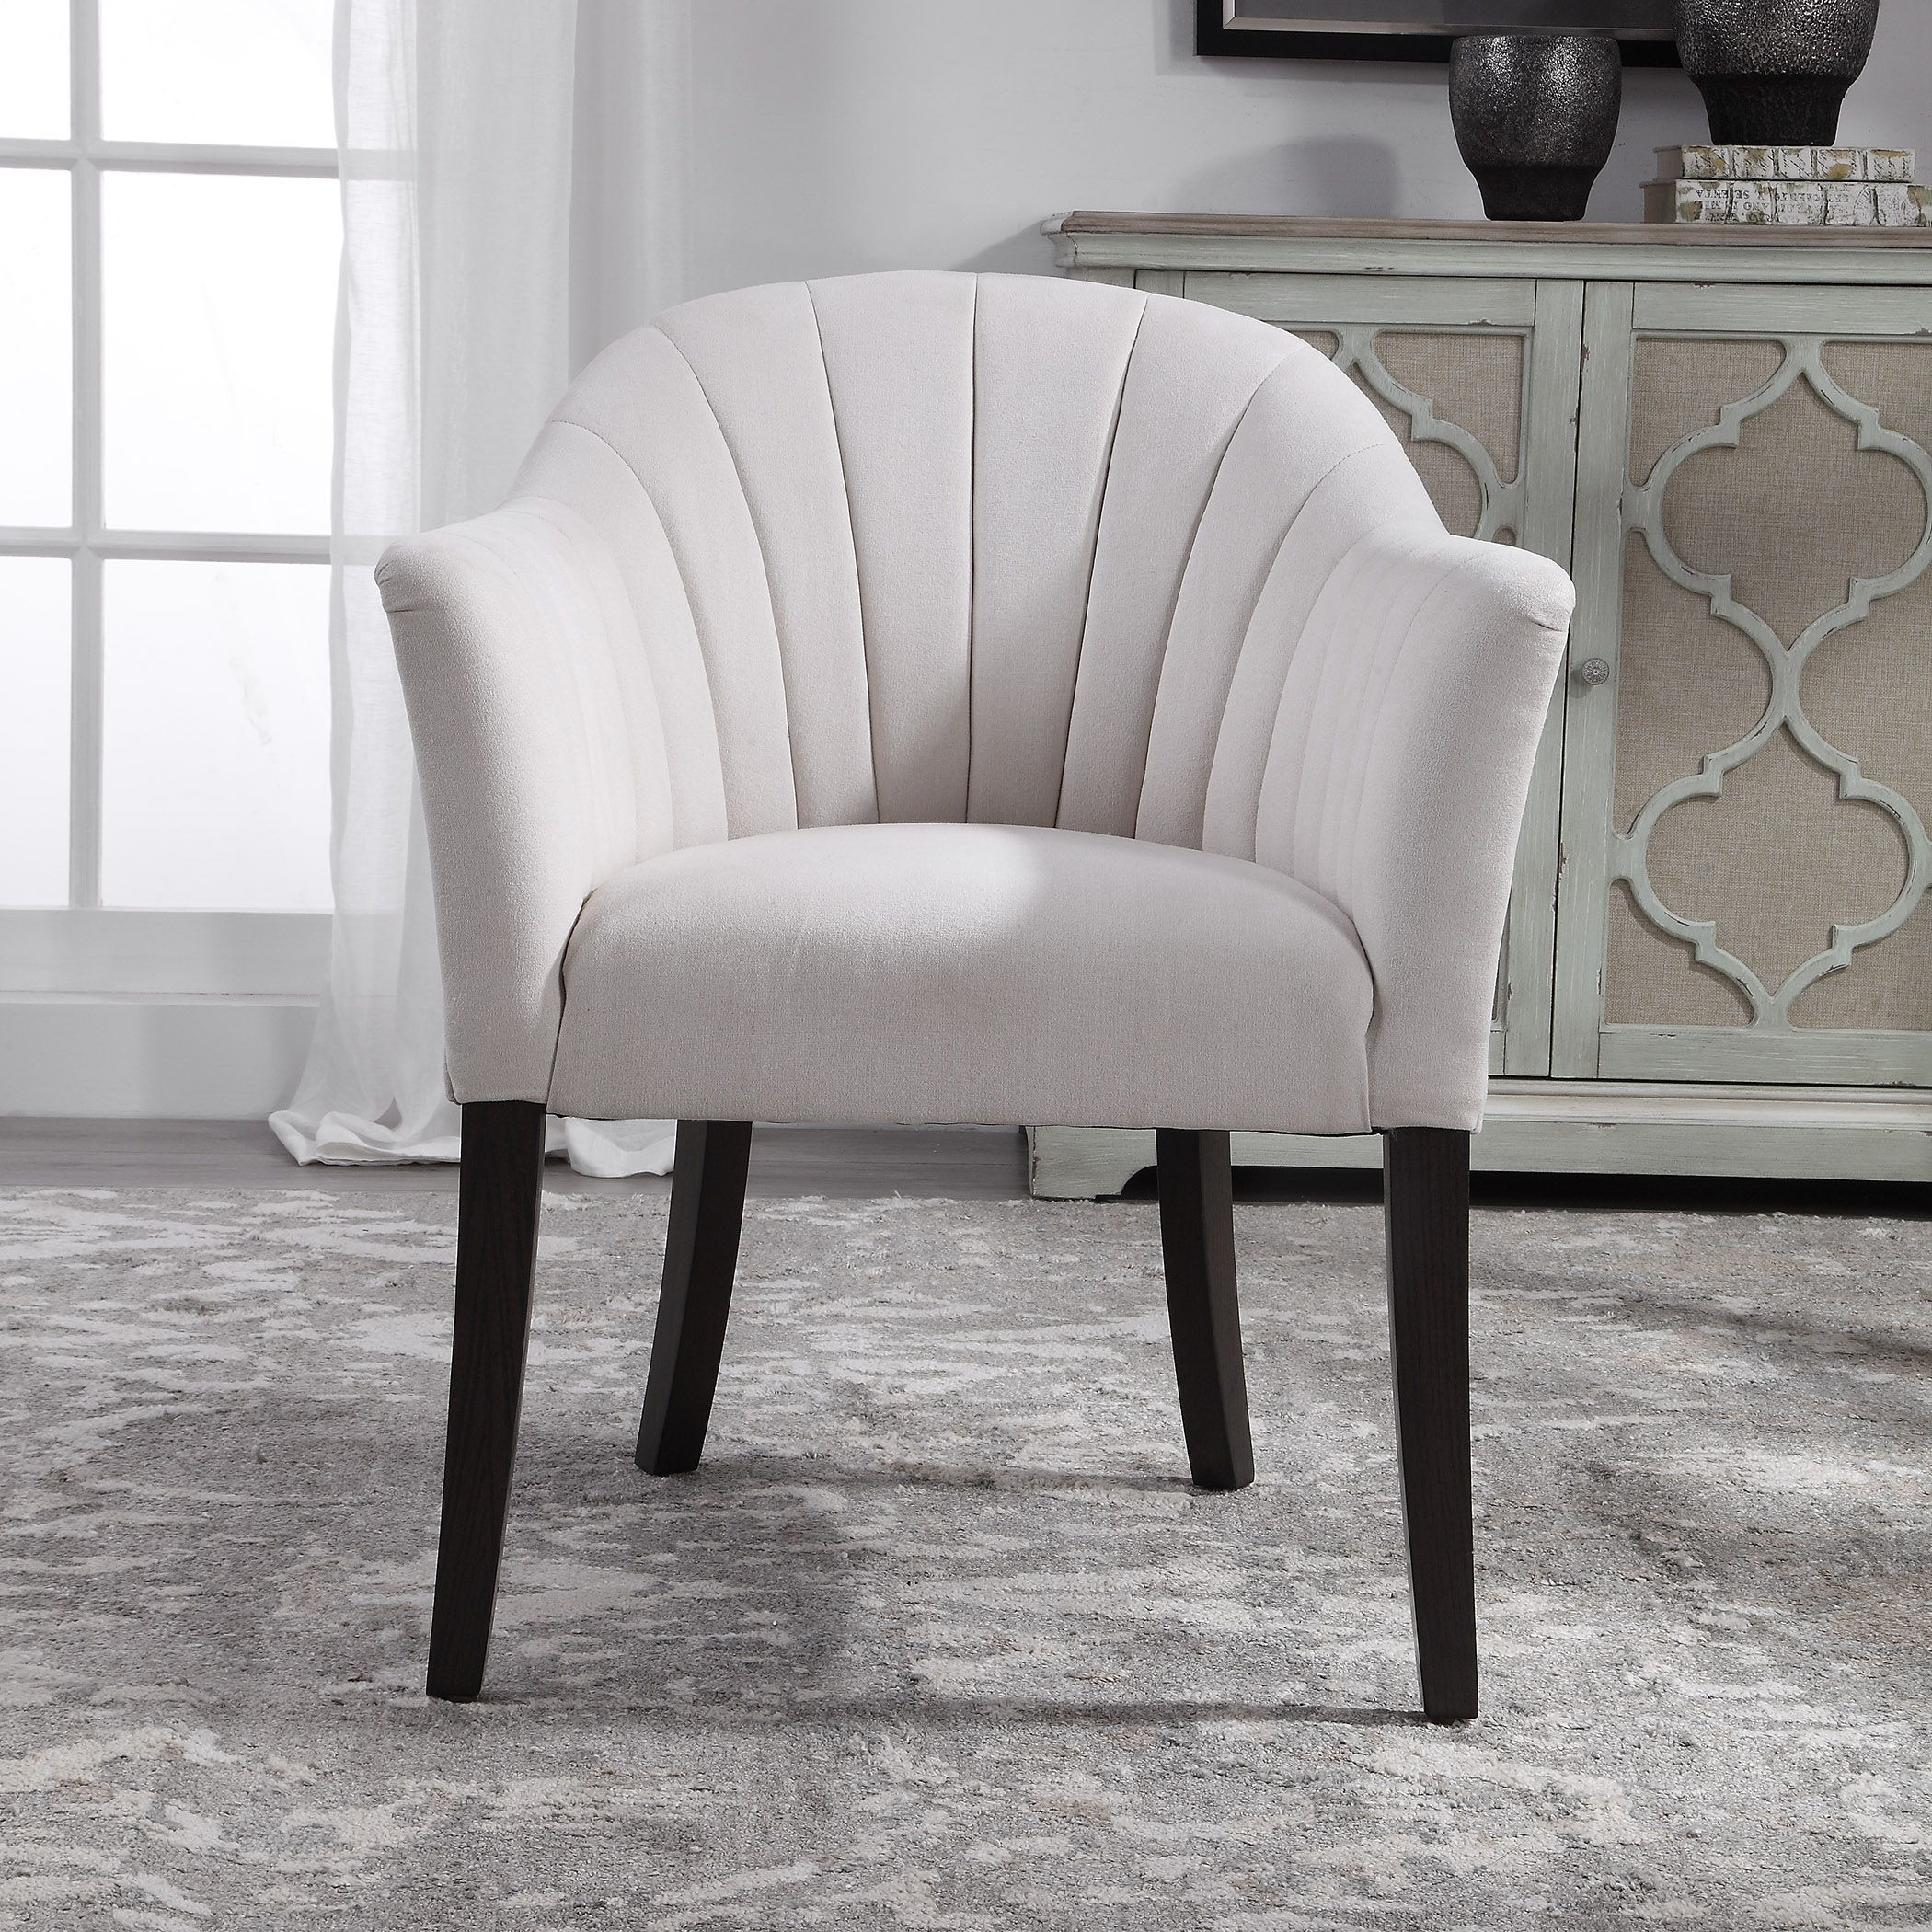 Miraculous Details About Contemporary Ivory Arm Chair Bedroom Living Room Armchair Accent Seating Coastal Ncnpc Chair Design For Home Ncnpcorg